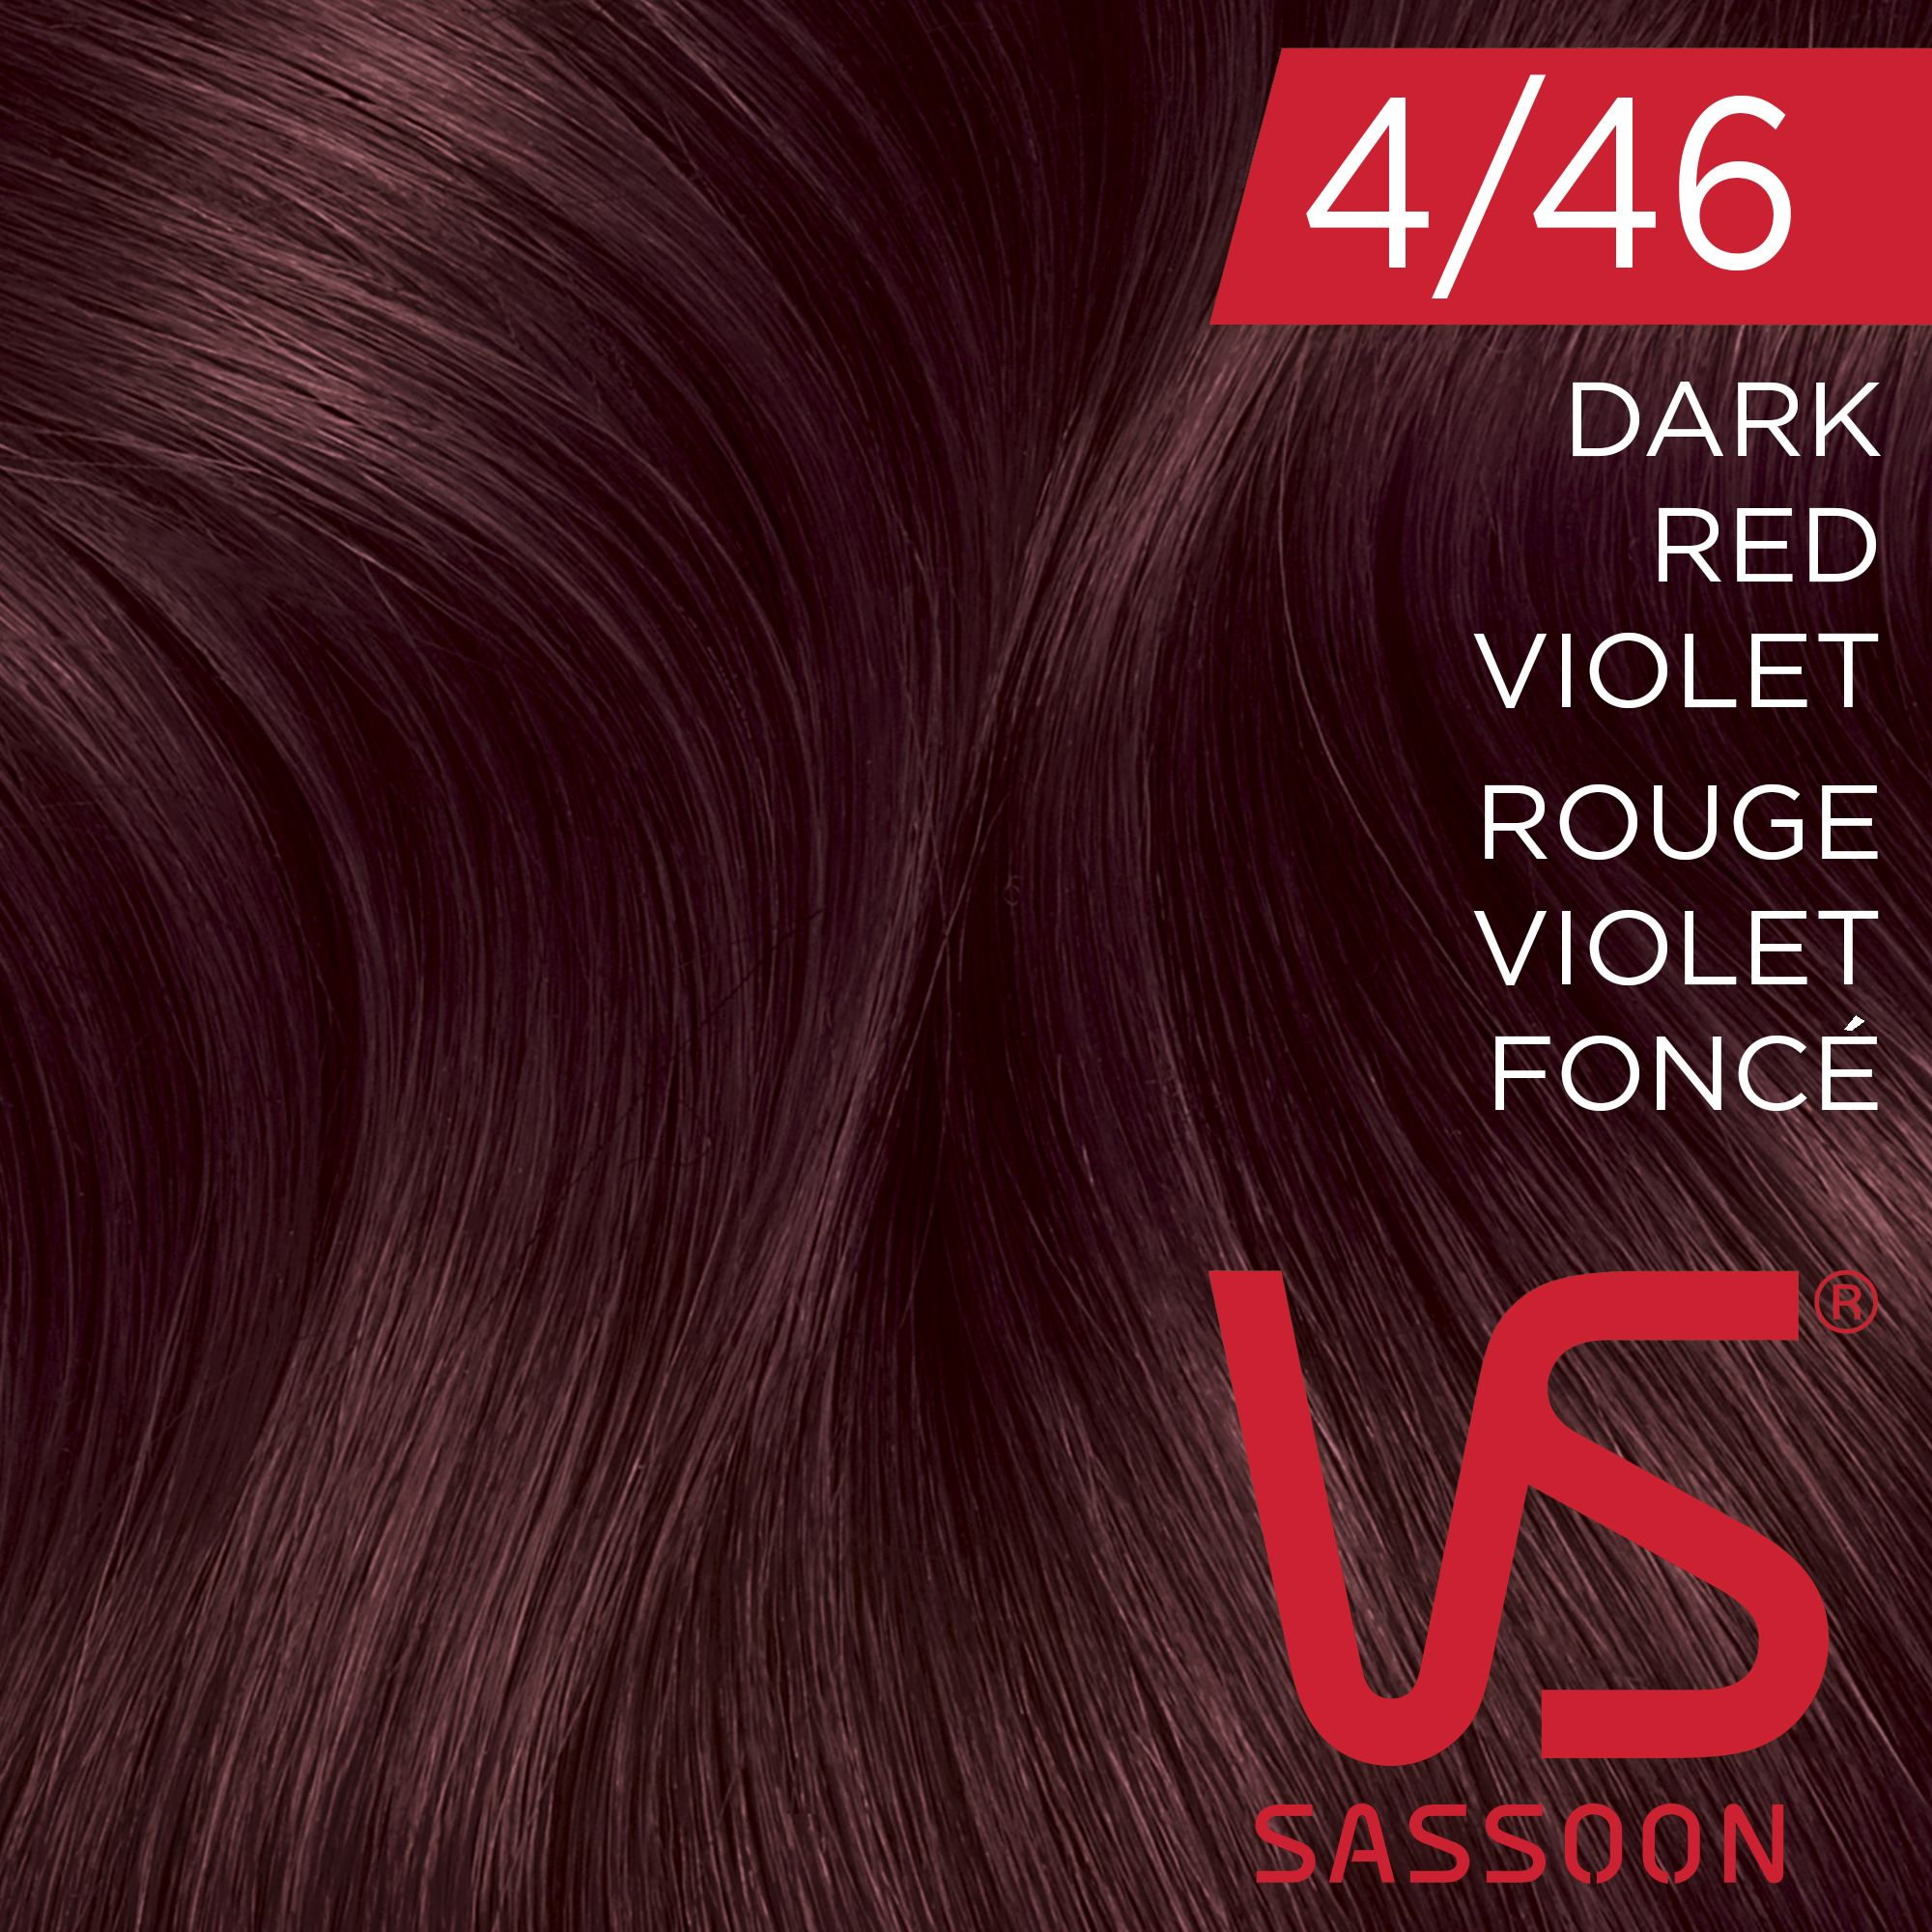 Diy purple hair color vidal sassoon salonist at home also best shade chart images dye colors rh pinterest